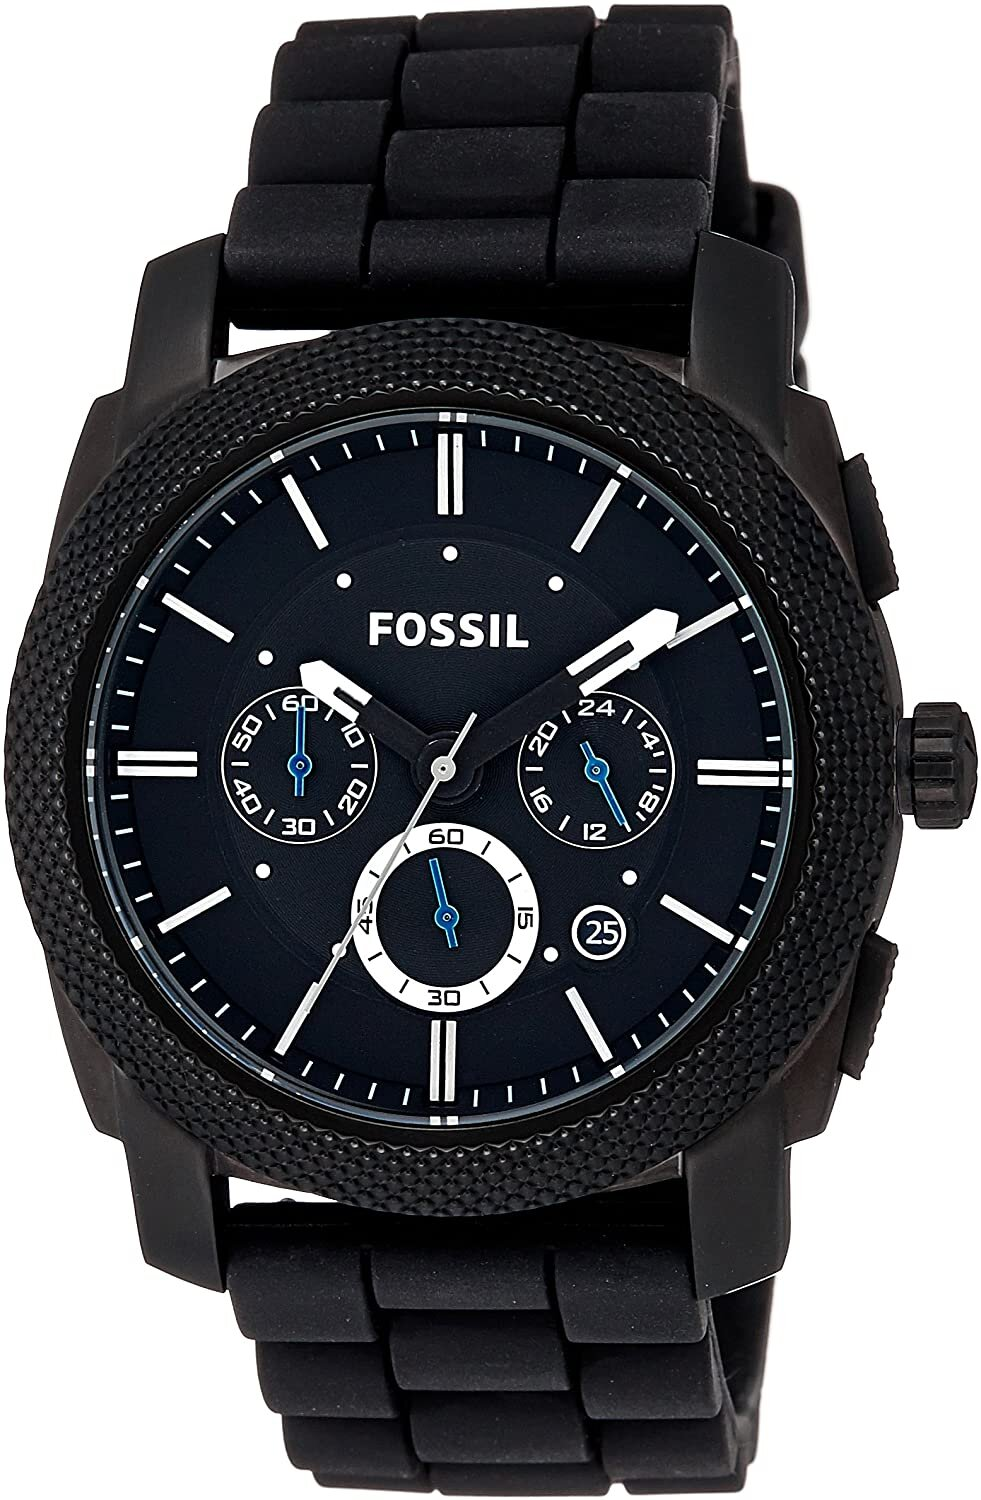 Buy Fossil Machine Chronograph Black Dial Men's Watch - FS4487 at Amazon.in